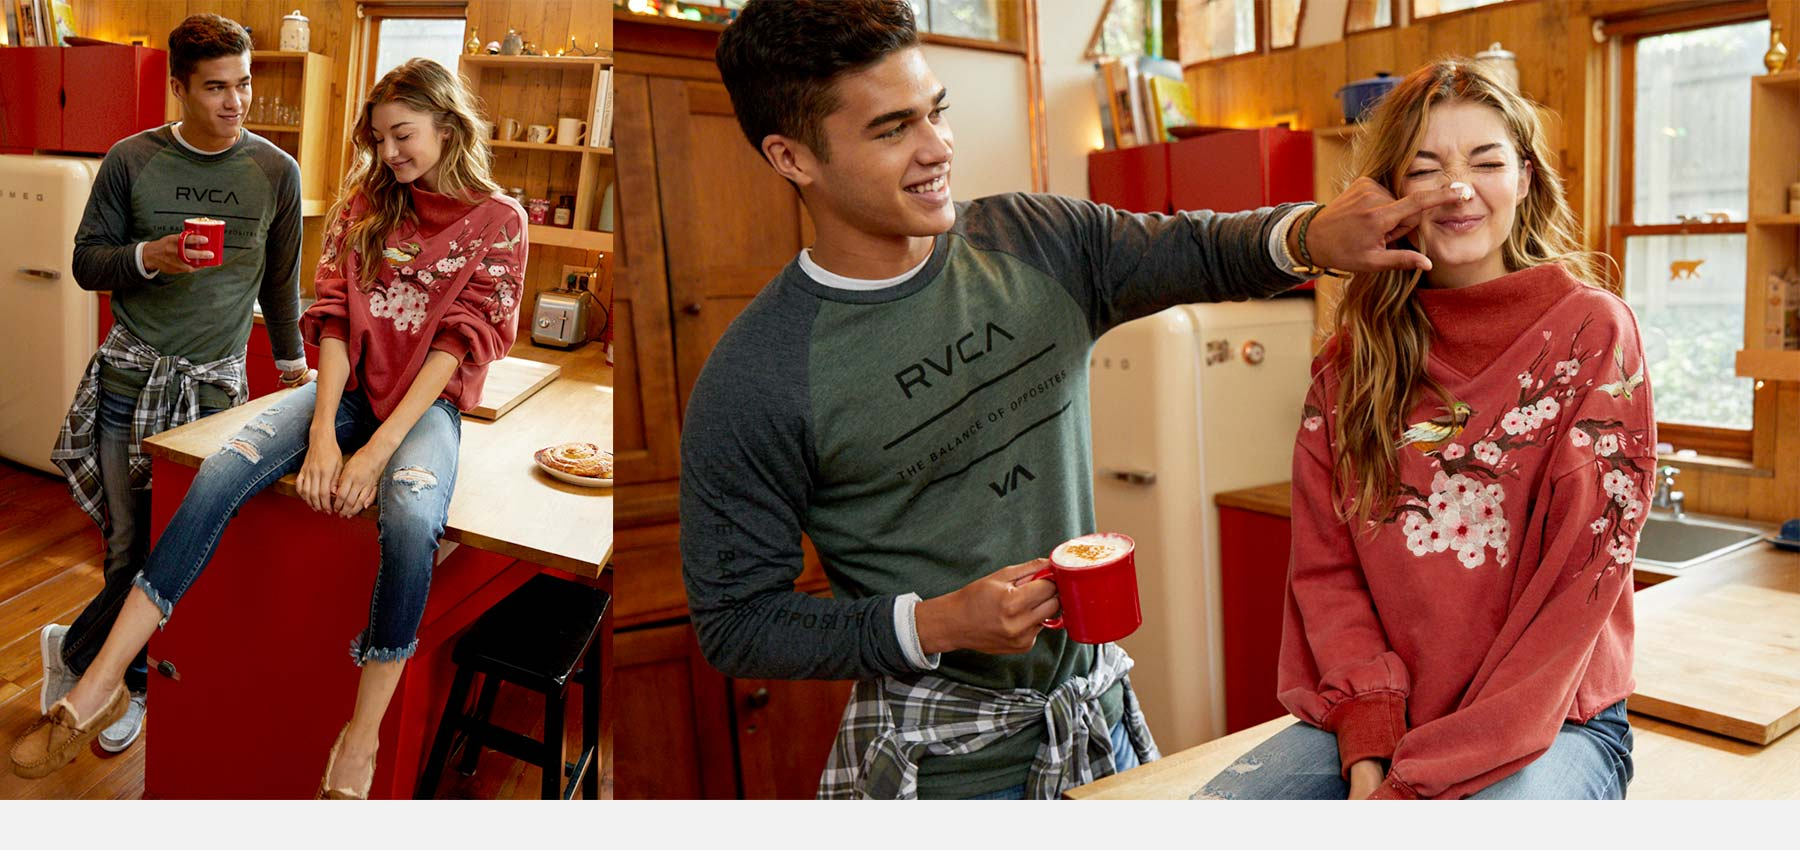 Couple in kitchen drinking hot chocolate wearing new styles from Buckle's holiday collection.